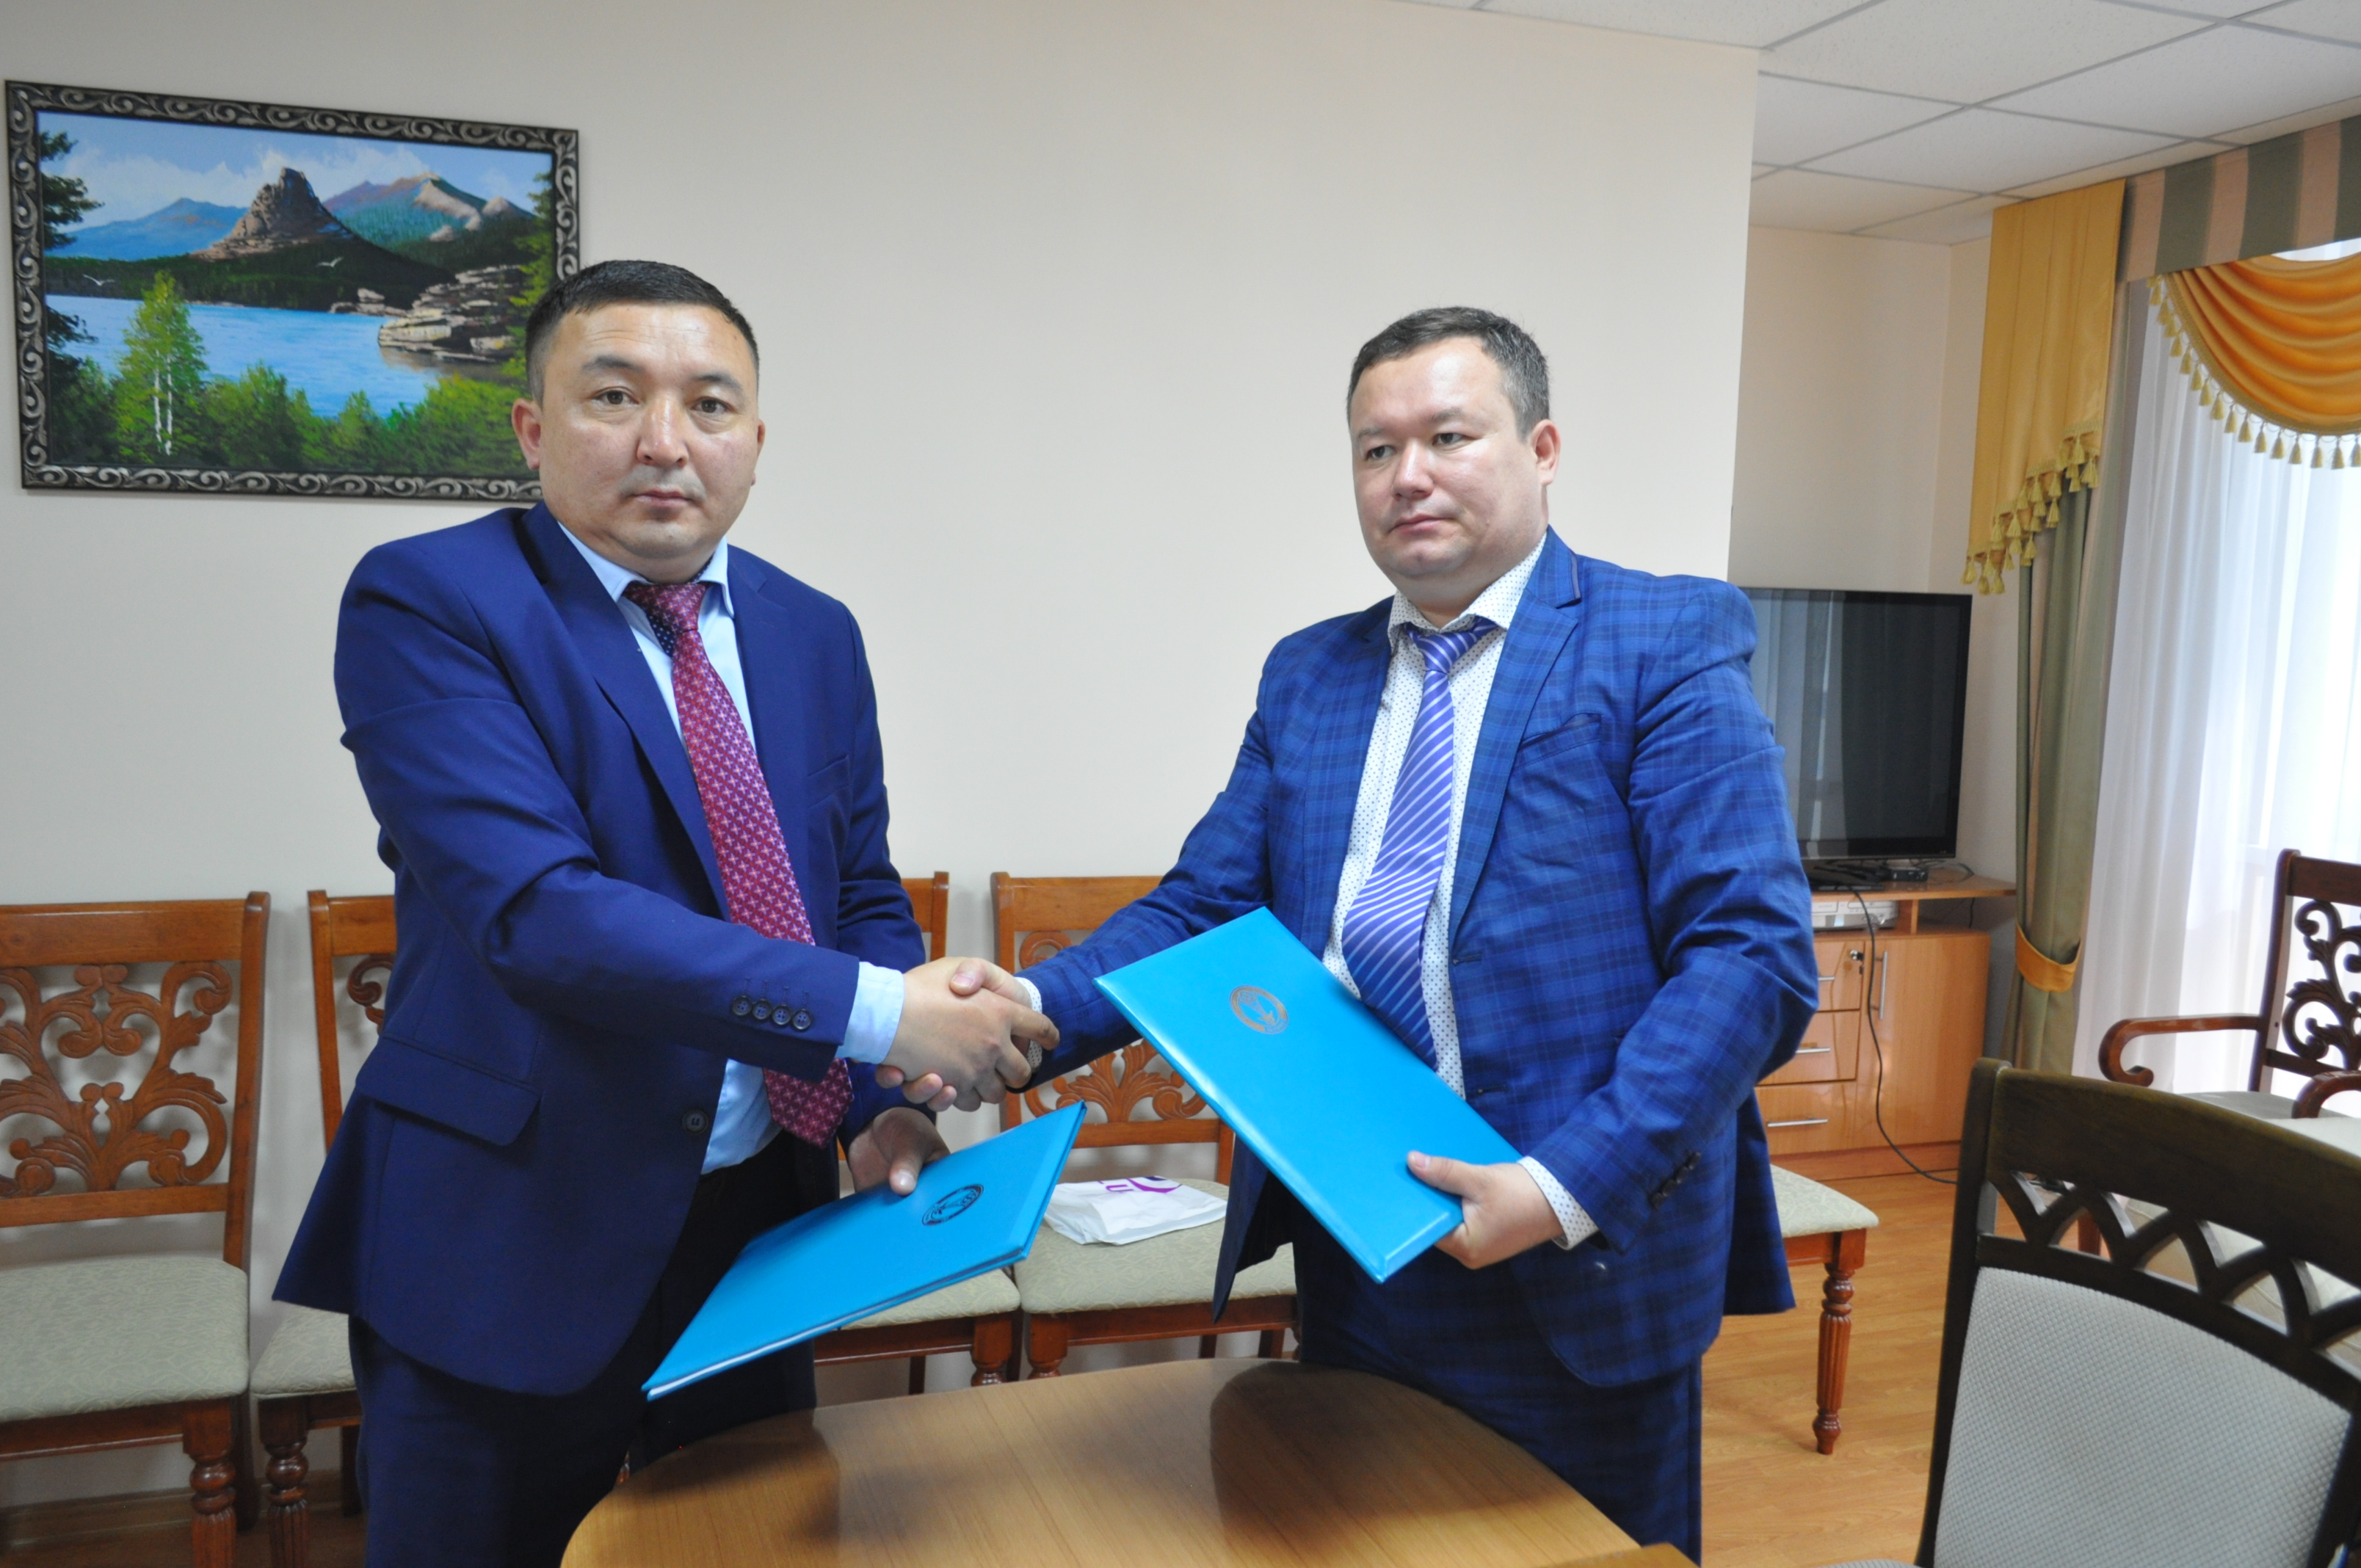 On 21 of June, 2018 at the State Archive of Astana was signed a memorandum of cooperation among the Director of the State Archive of Astana Kokbas A. and head of the State Archive of Scientific and Technical Documentation of Karaganda Region Nesipbayev A.